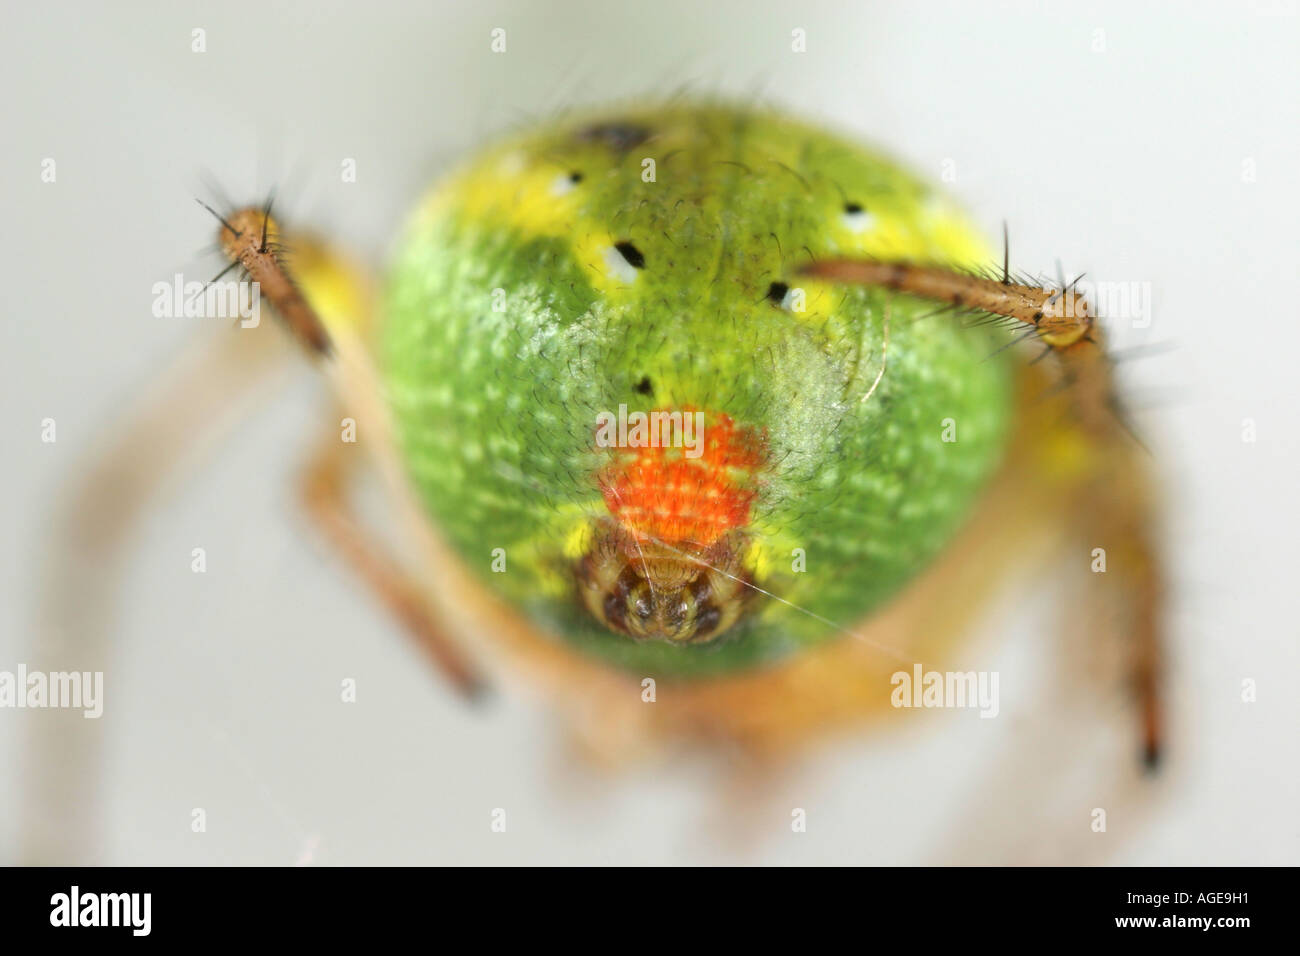 The tiny red spot on the back of the Cucumber Spider, Araniella Cucurbitina Stock Photo